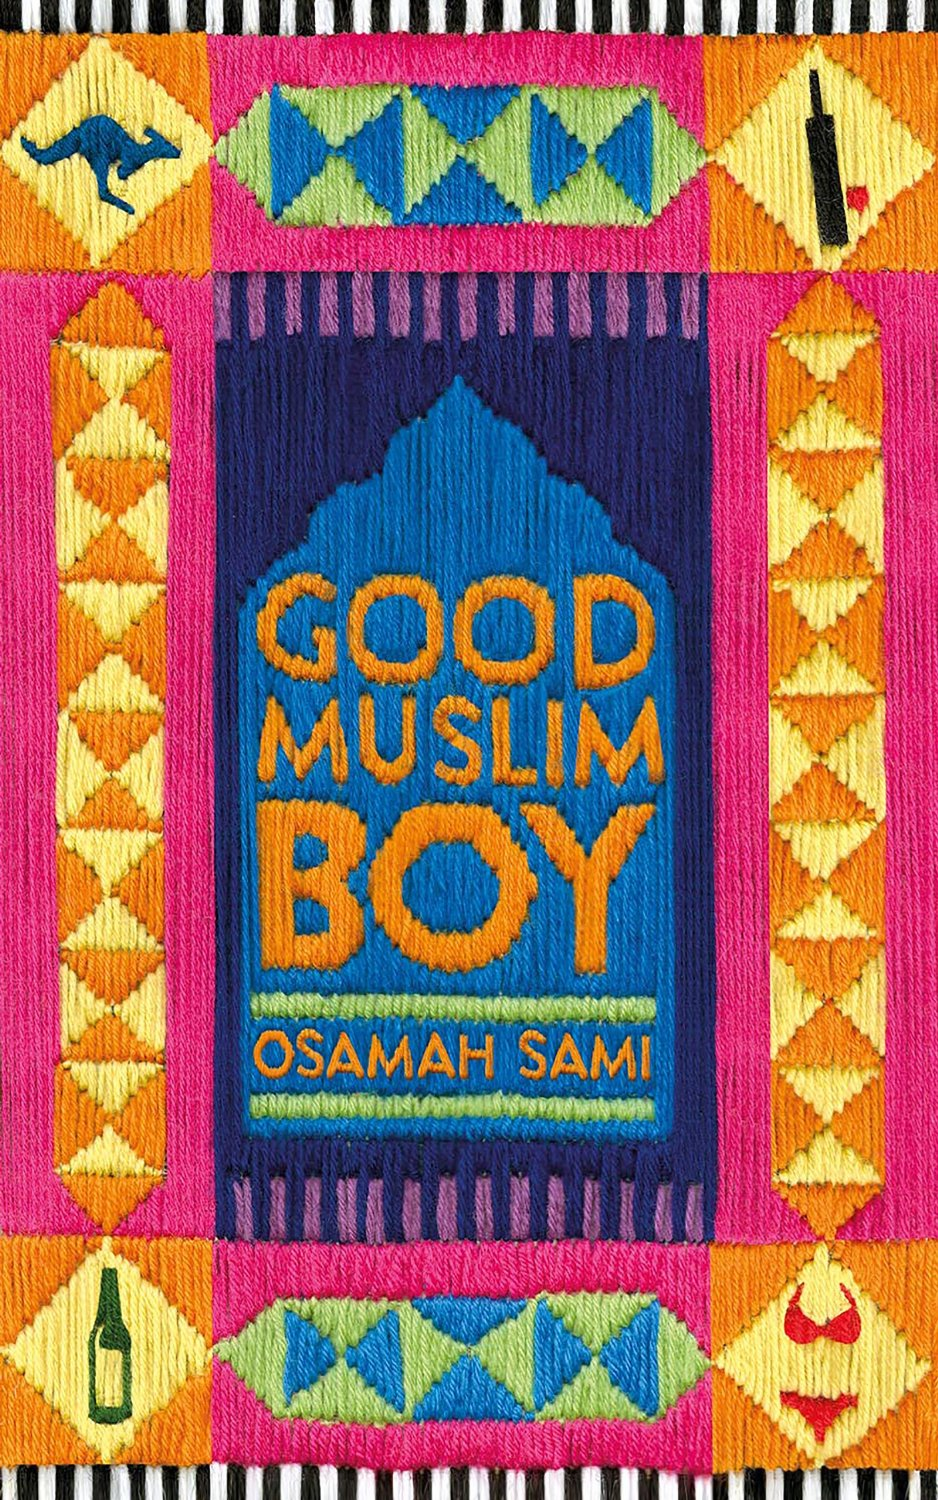 Good Muslim Boy published by Hardie Grant; book cover design by Mark ...